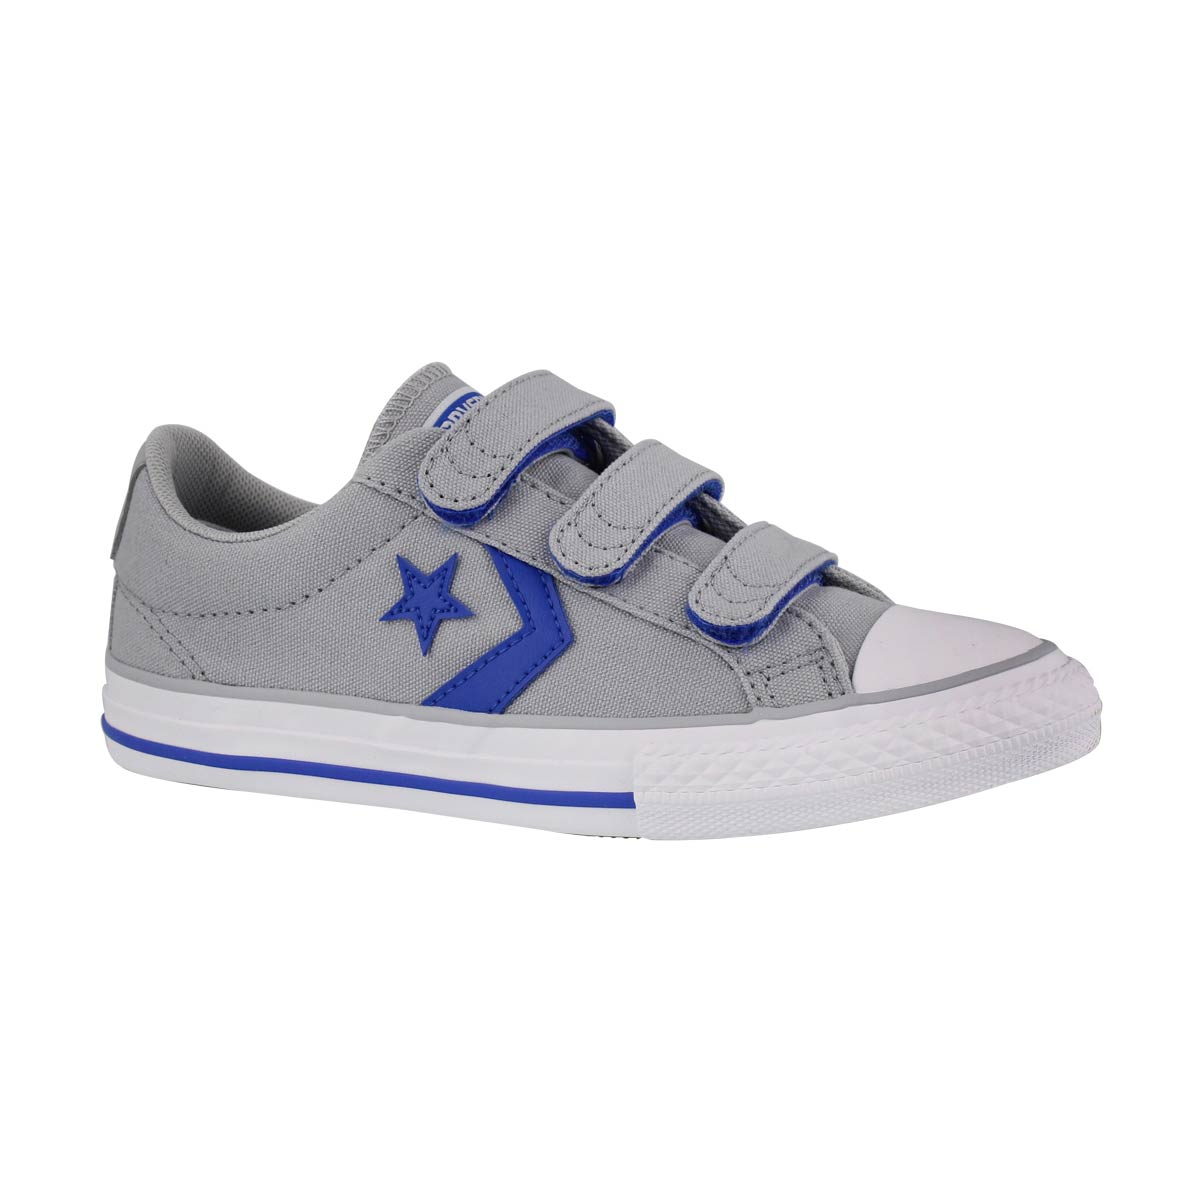 Bys Star Player 3V grey/blu/wht sneaker